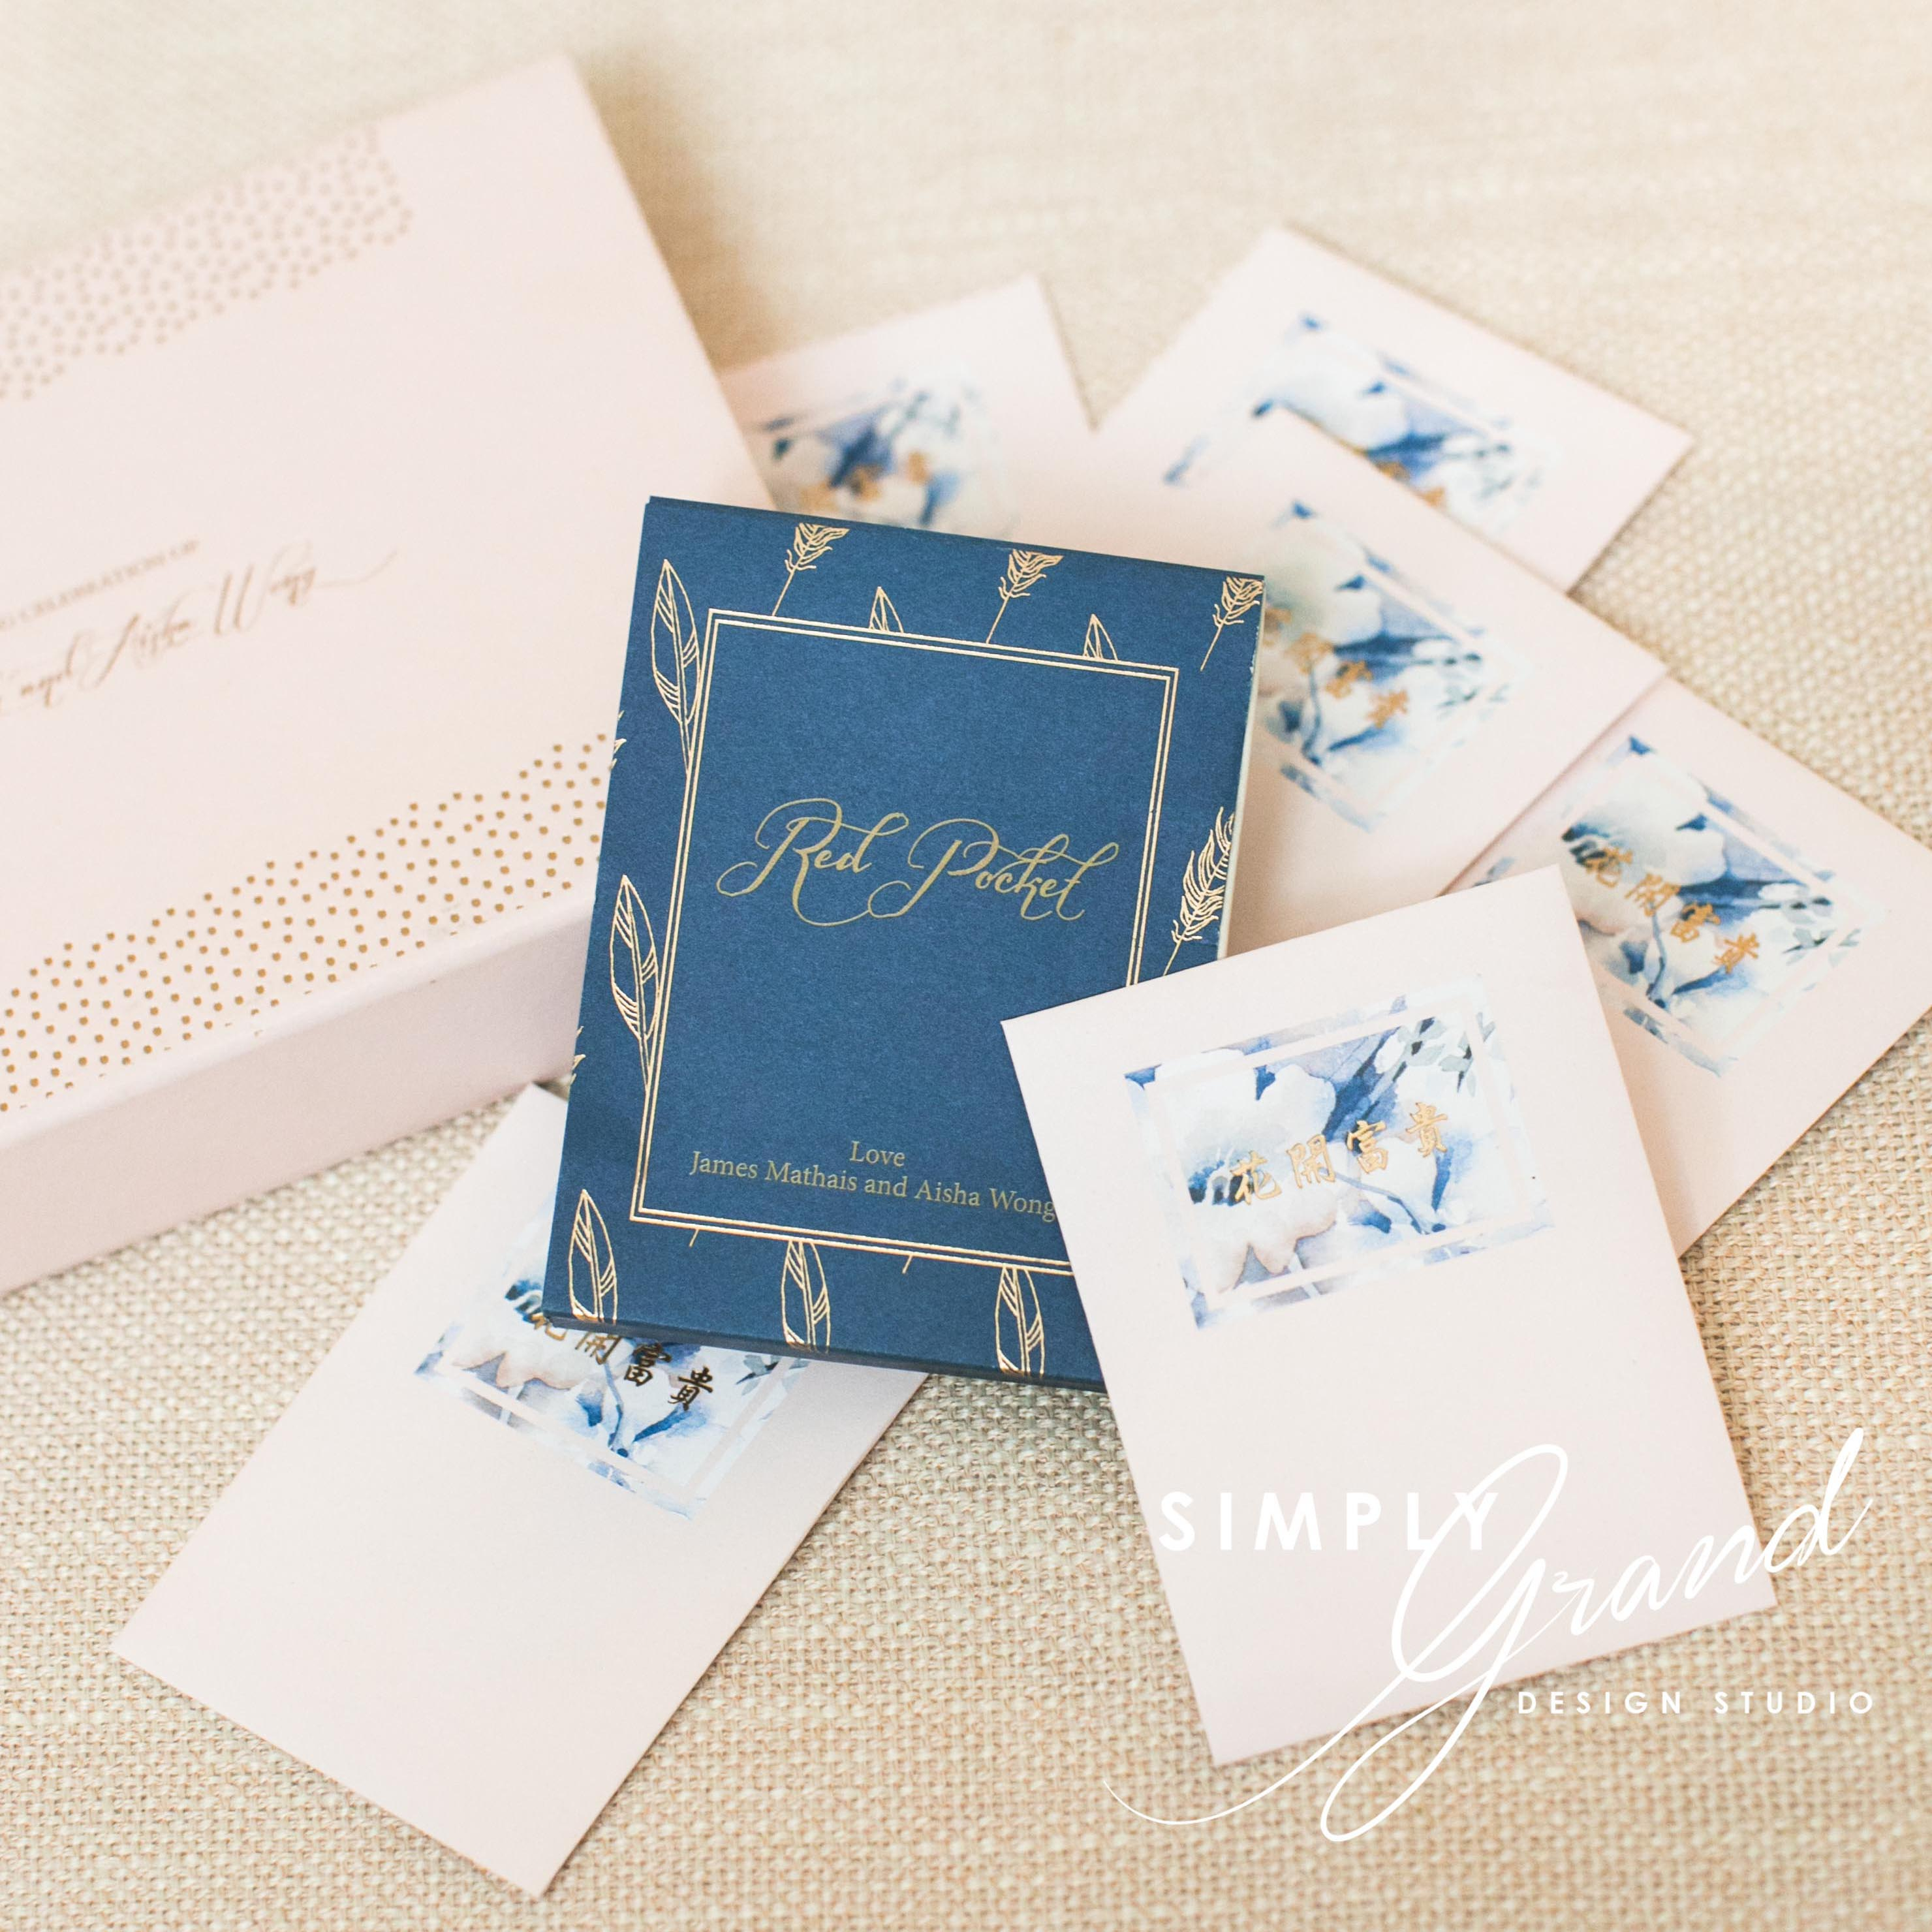 Simply_Grand_Production_Stationery_Invitation_Card_1_1